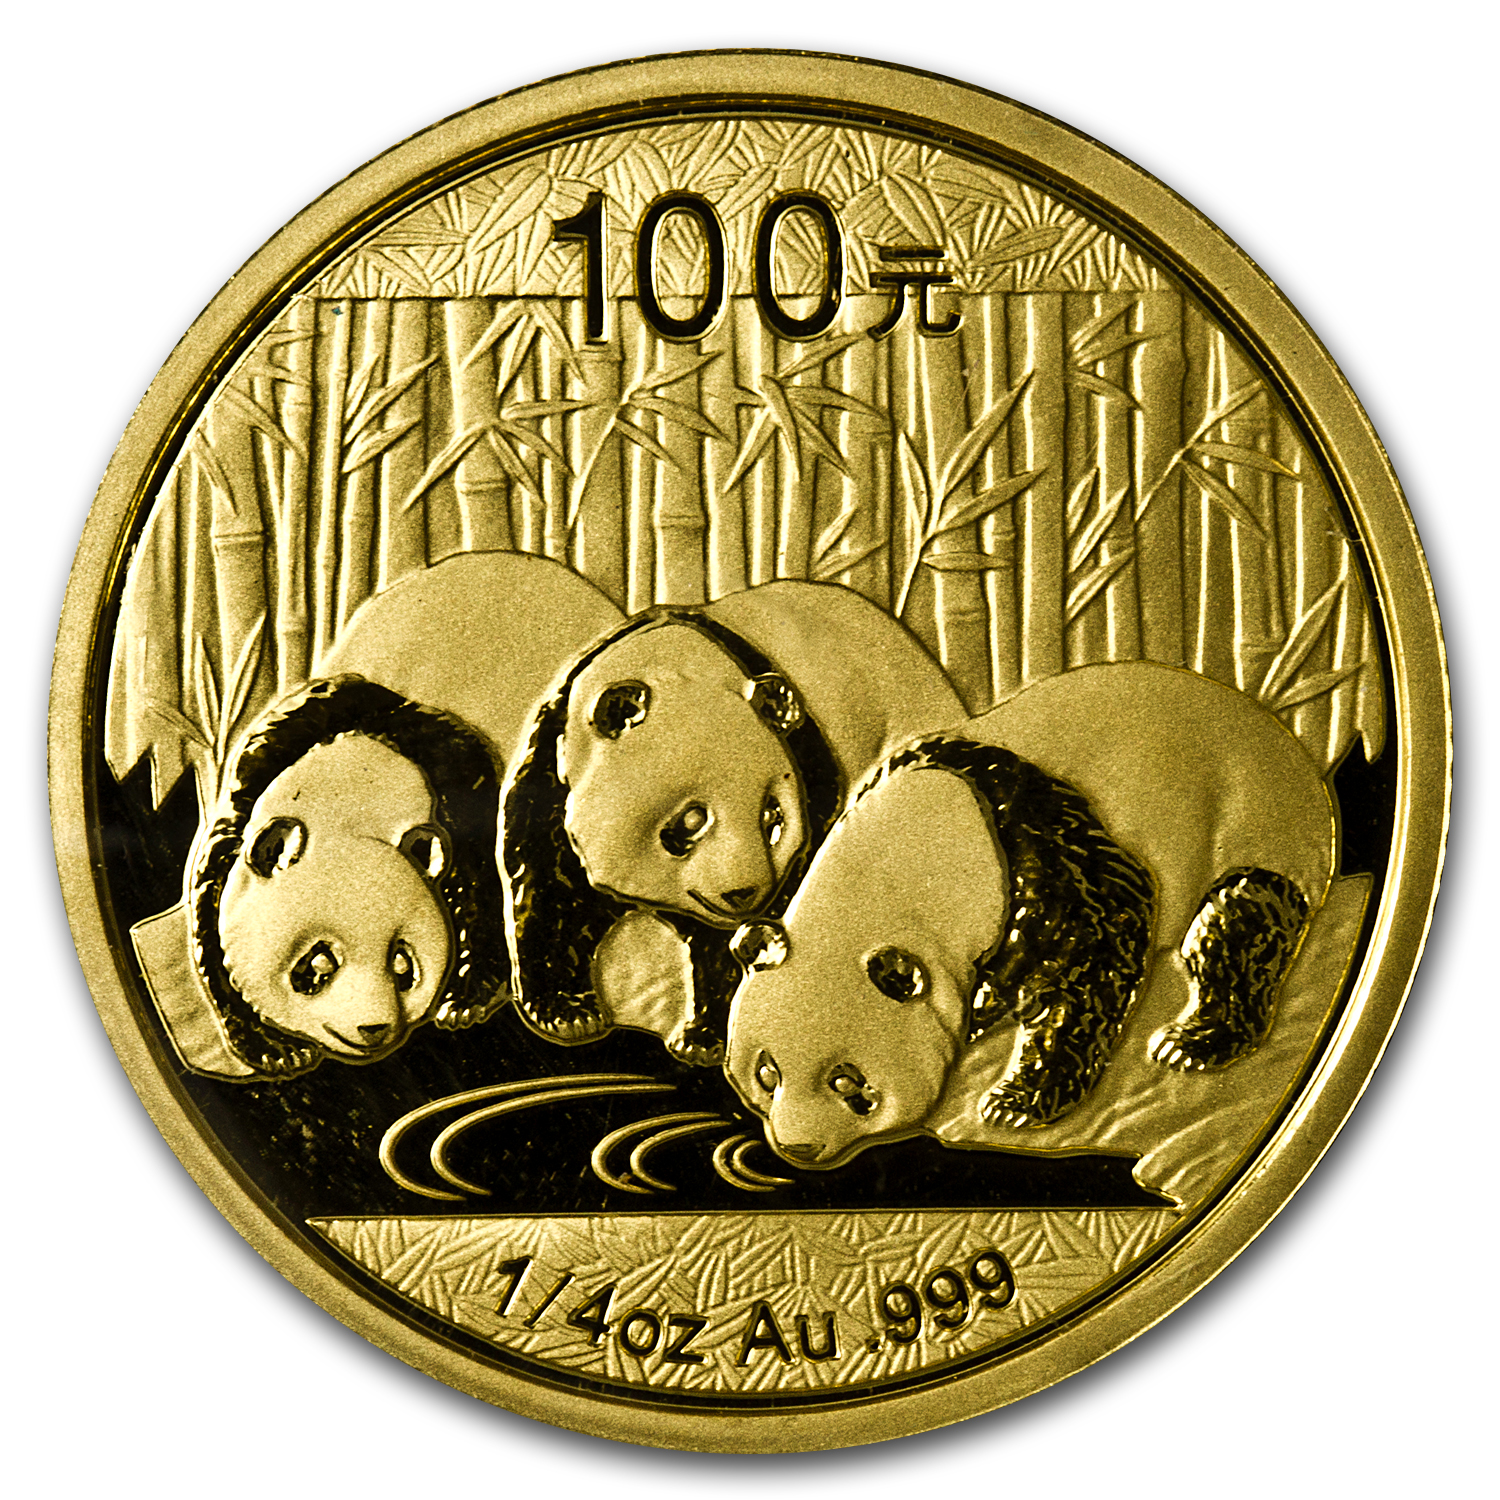 2013 China 1/4 oz Gold Panda BU (Sealed)